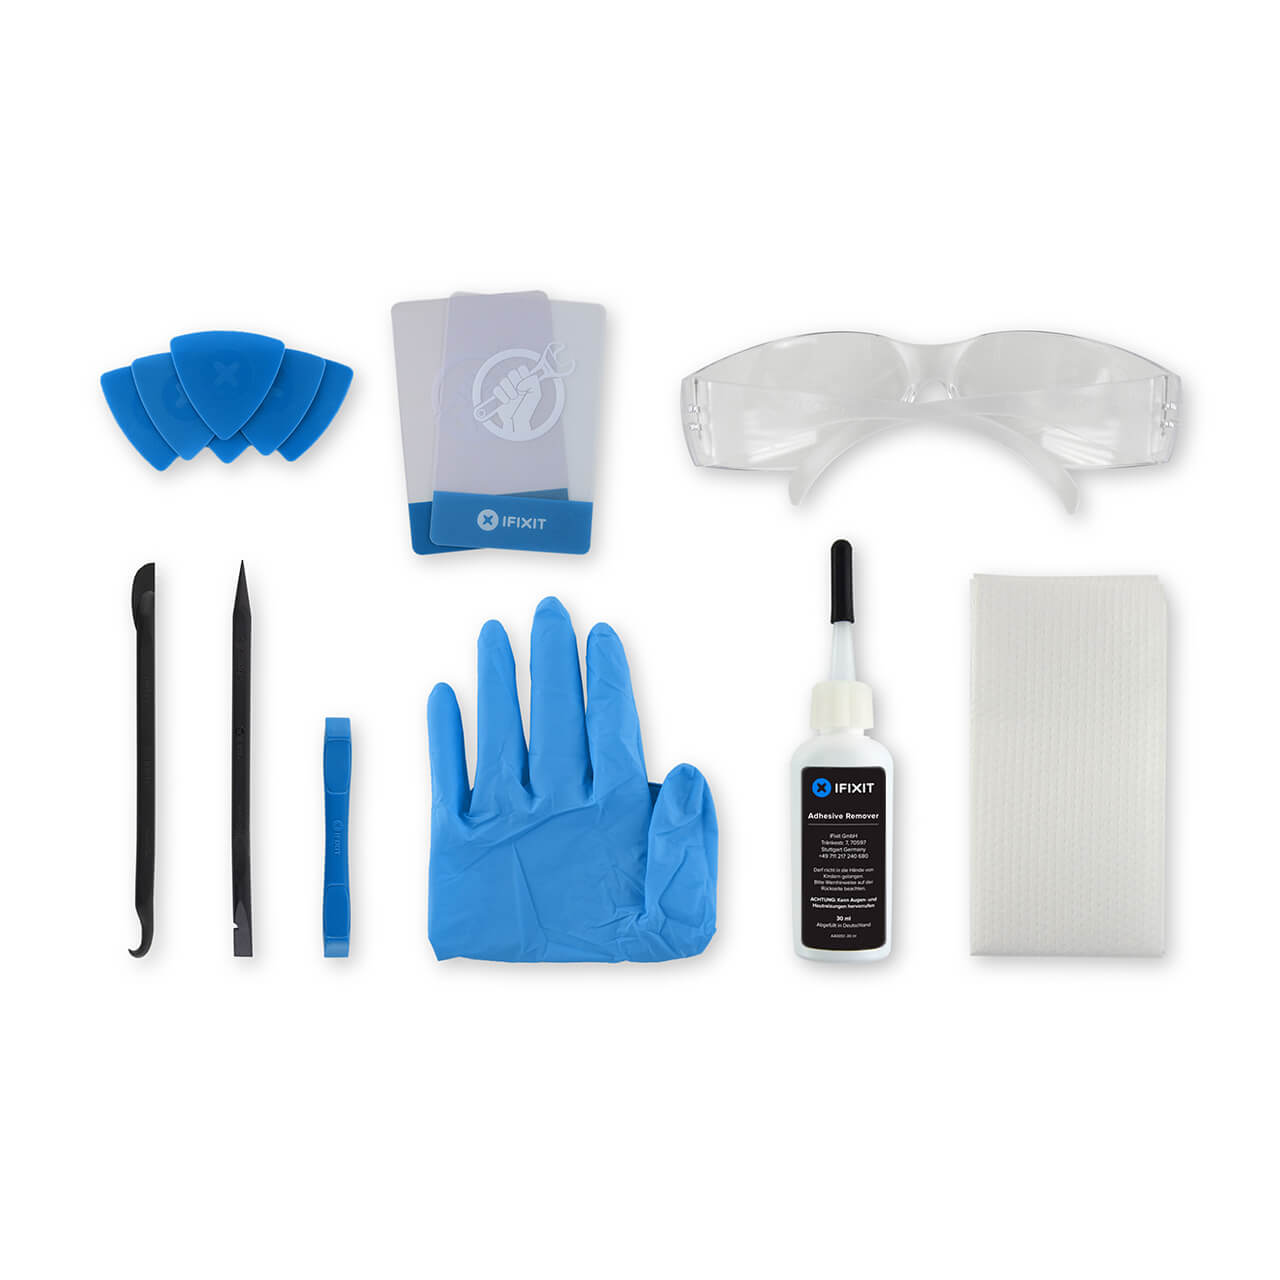 iFixit Adhesive Remover (for Battery, Screen, and Glass Adhesive) Bundle